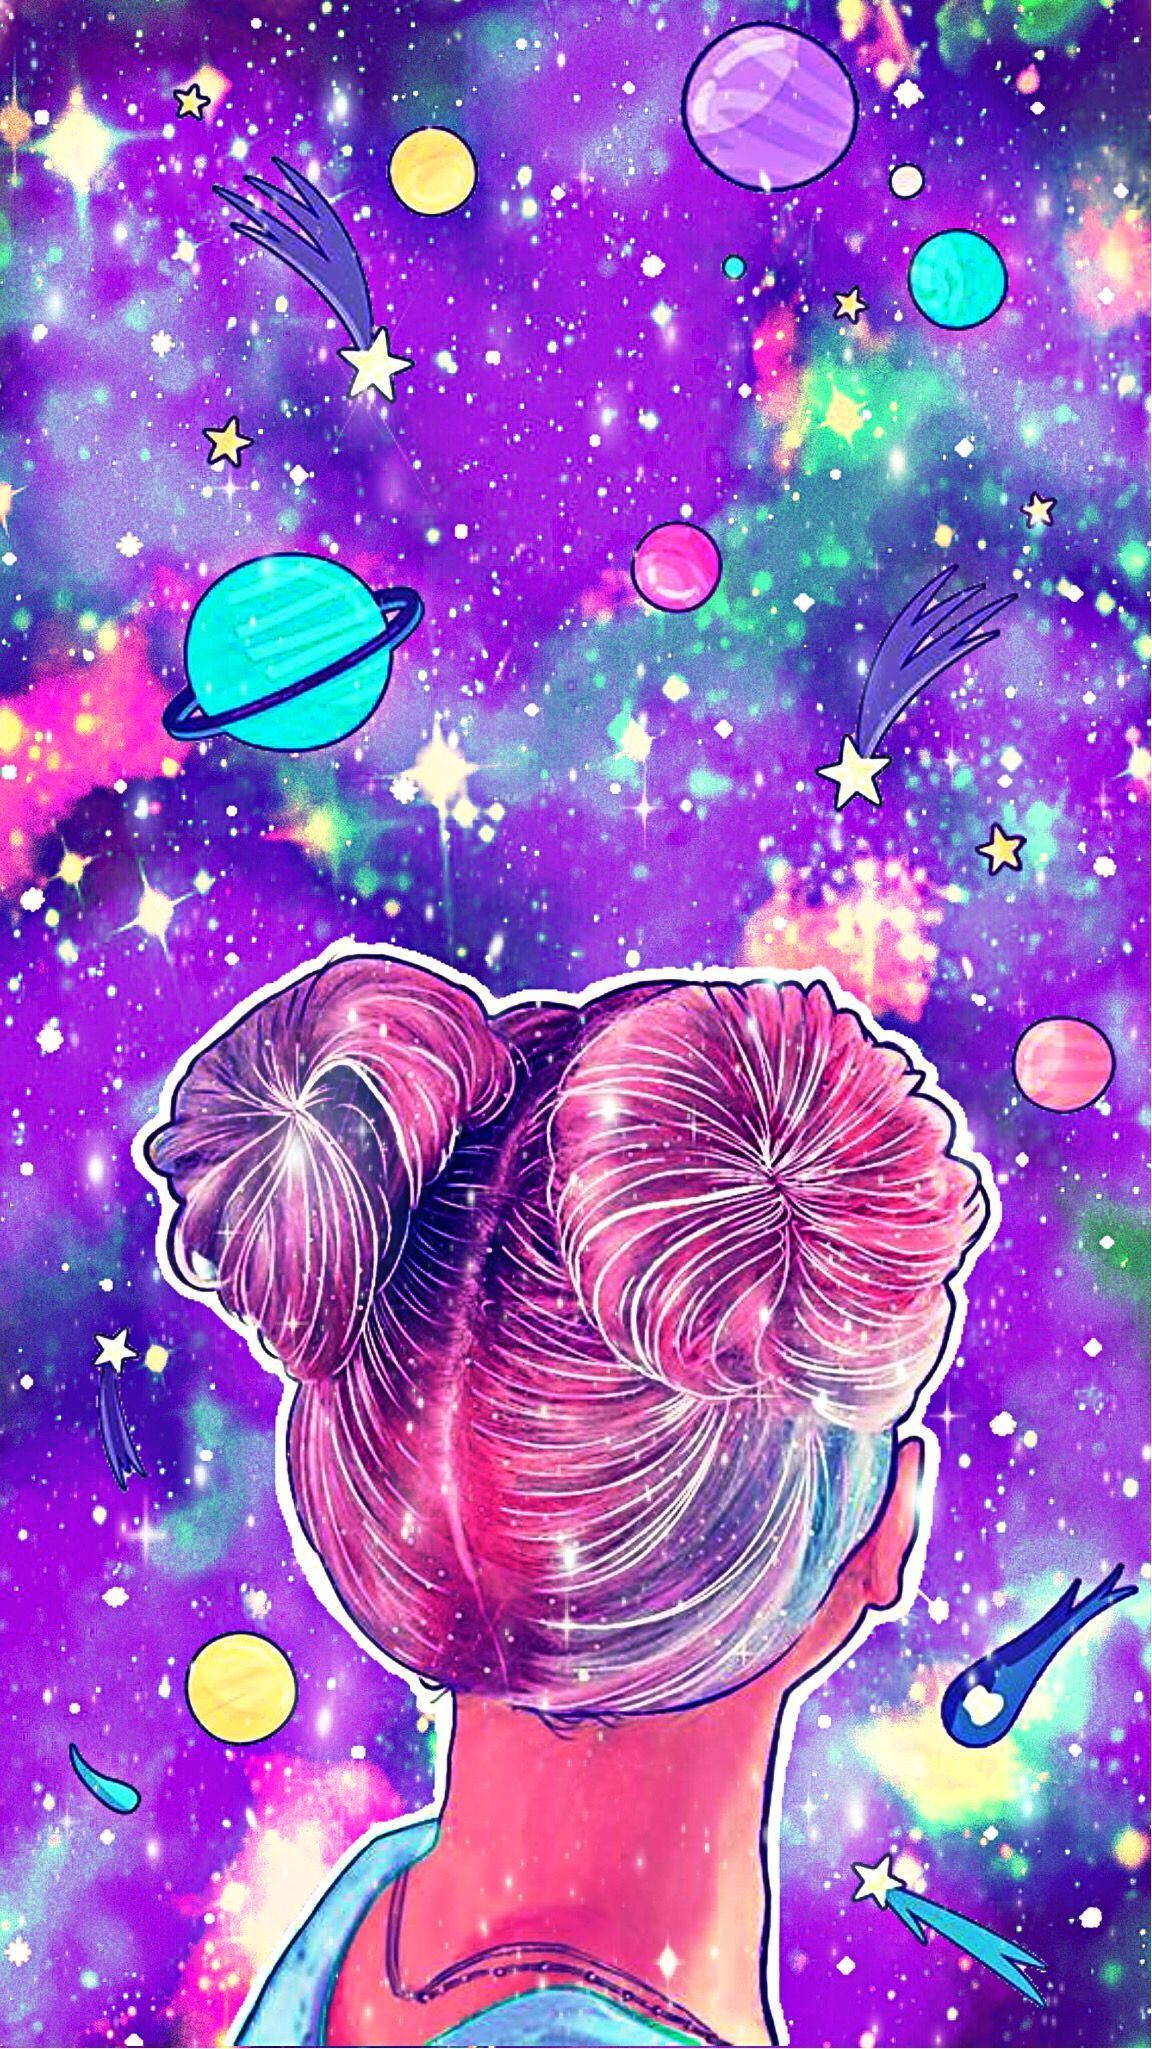 Girl Planet Galaxy Androidwallpaper Iphonewallpaper Glitter Sparkle Galaxy Space Planets Sky Cute Galaxy Wallpaper Anime Wallpaper Cute Anime Wallpaper